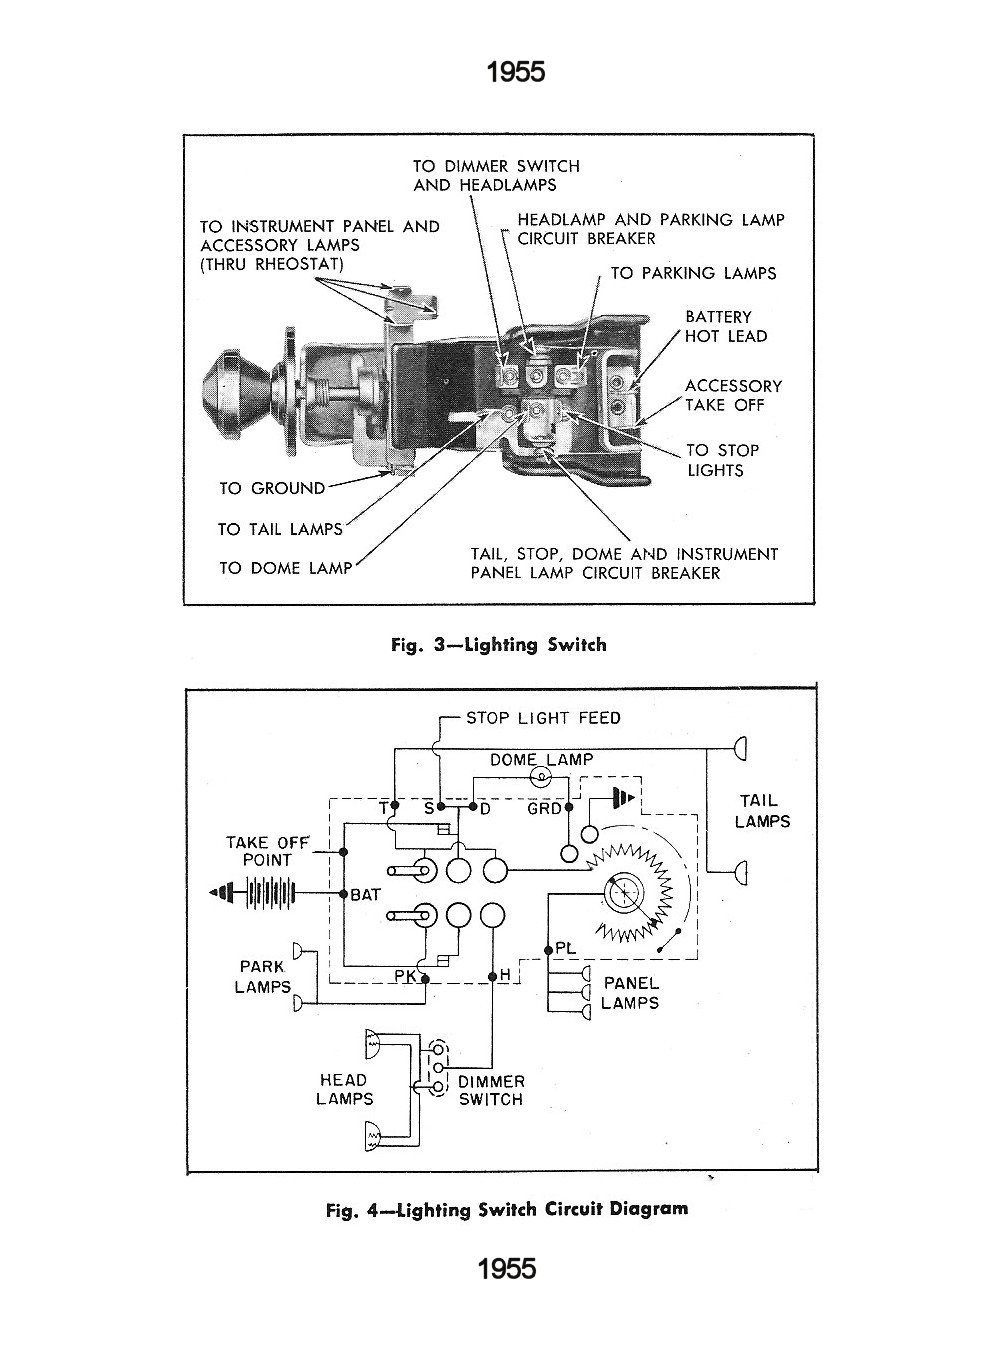 47 Chevy Headlight Switch Diagram - Wiring Diagrams Hubs on chevy fuse box diagram, chevy headlight sensor, chevy radiator diagram, 2004 chevy trailblazer transmission diagram, 4l60e wiring harness diagram, dodge wiring harness diagram, chevy headlight adjustment, chevy silverado fuel system diagram, 2005 chevy impala ignition switch diagram, 1963 c10 dash diagram, relay wiring diagram, chevy alternator diagram, headlight dimmer switch diagram, 2000 chevrolet truck wiring diagram, chevy headlight switch, chevy light switch diagram, 97 chevy truck tail light diagram, chevy drl relay, headlight wire harness diagram, headlight circuit diagram,